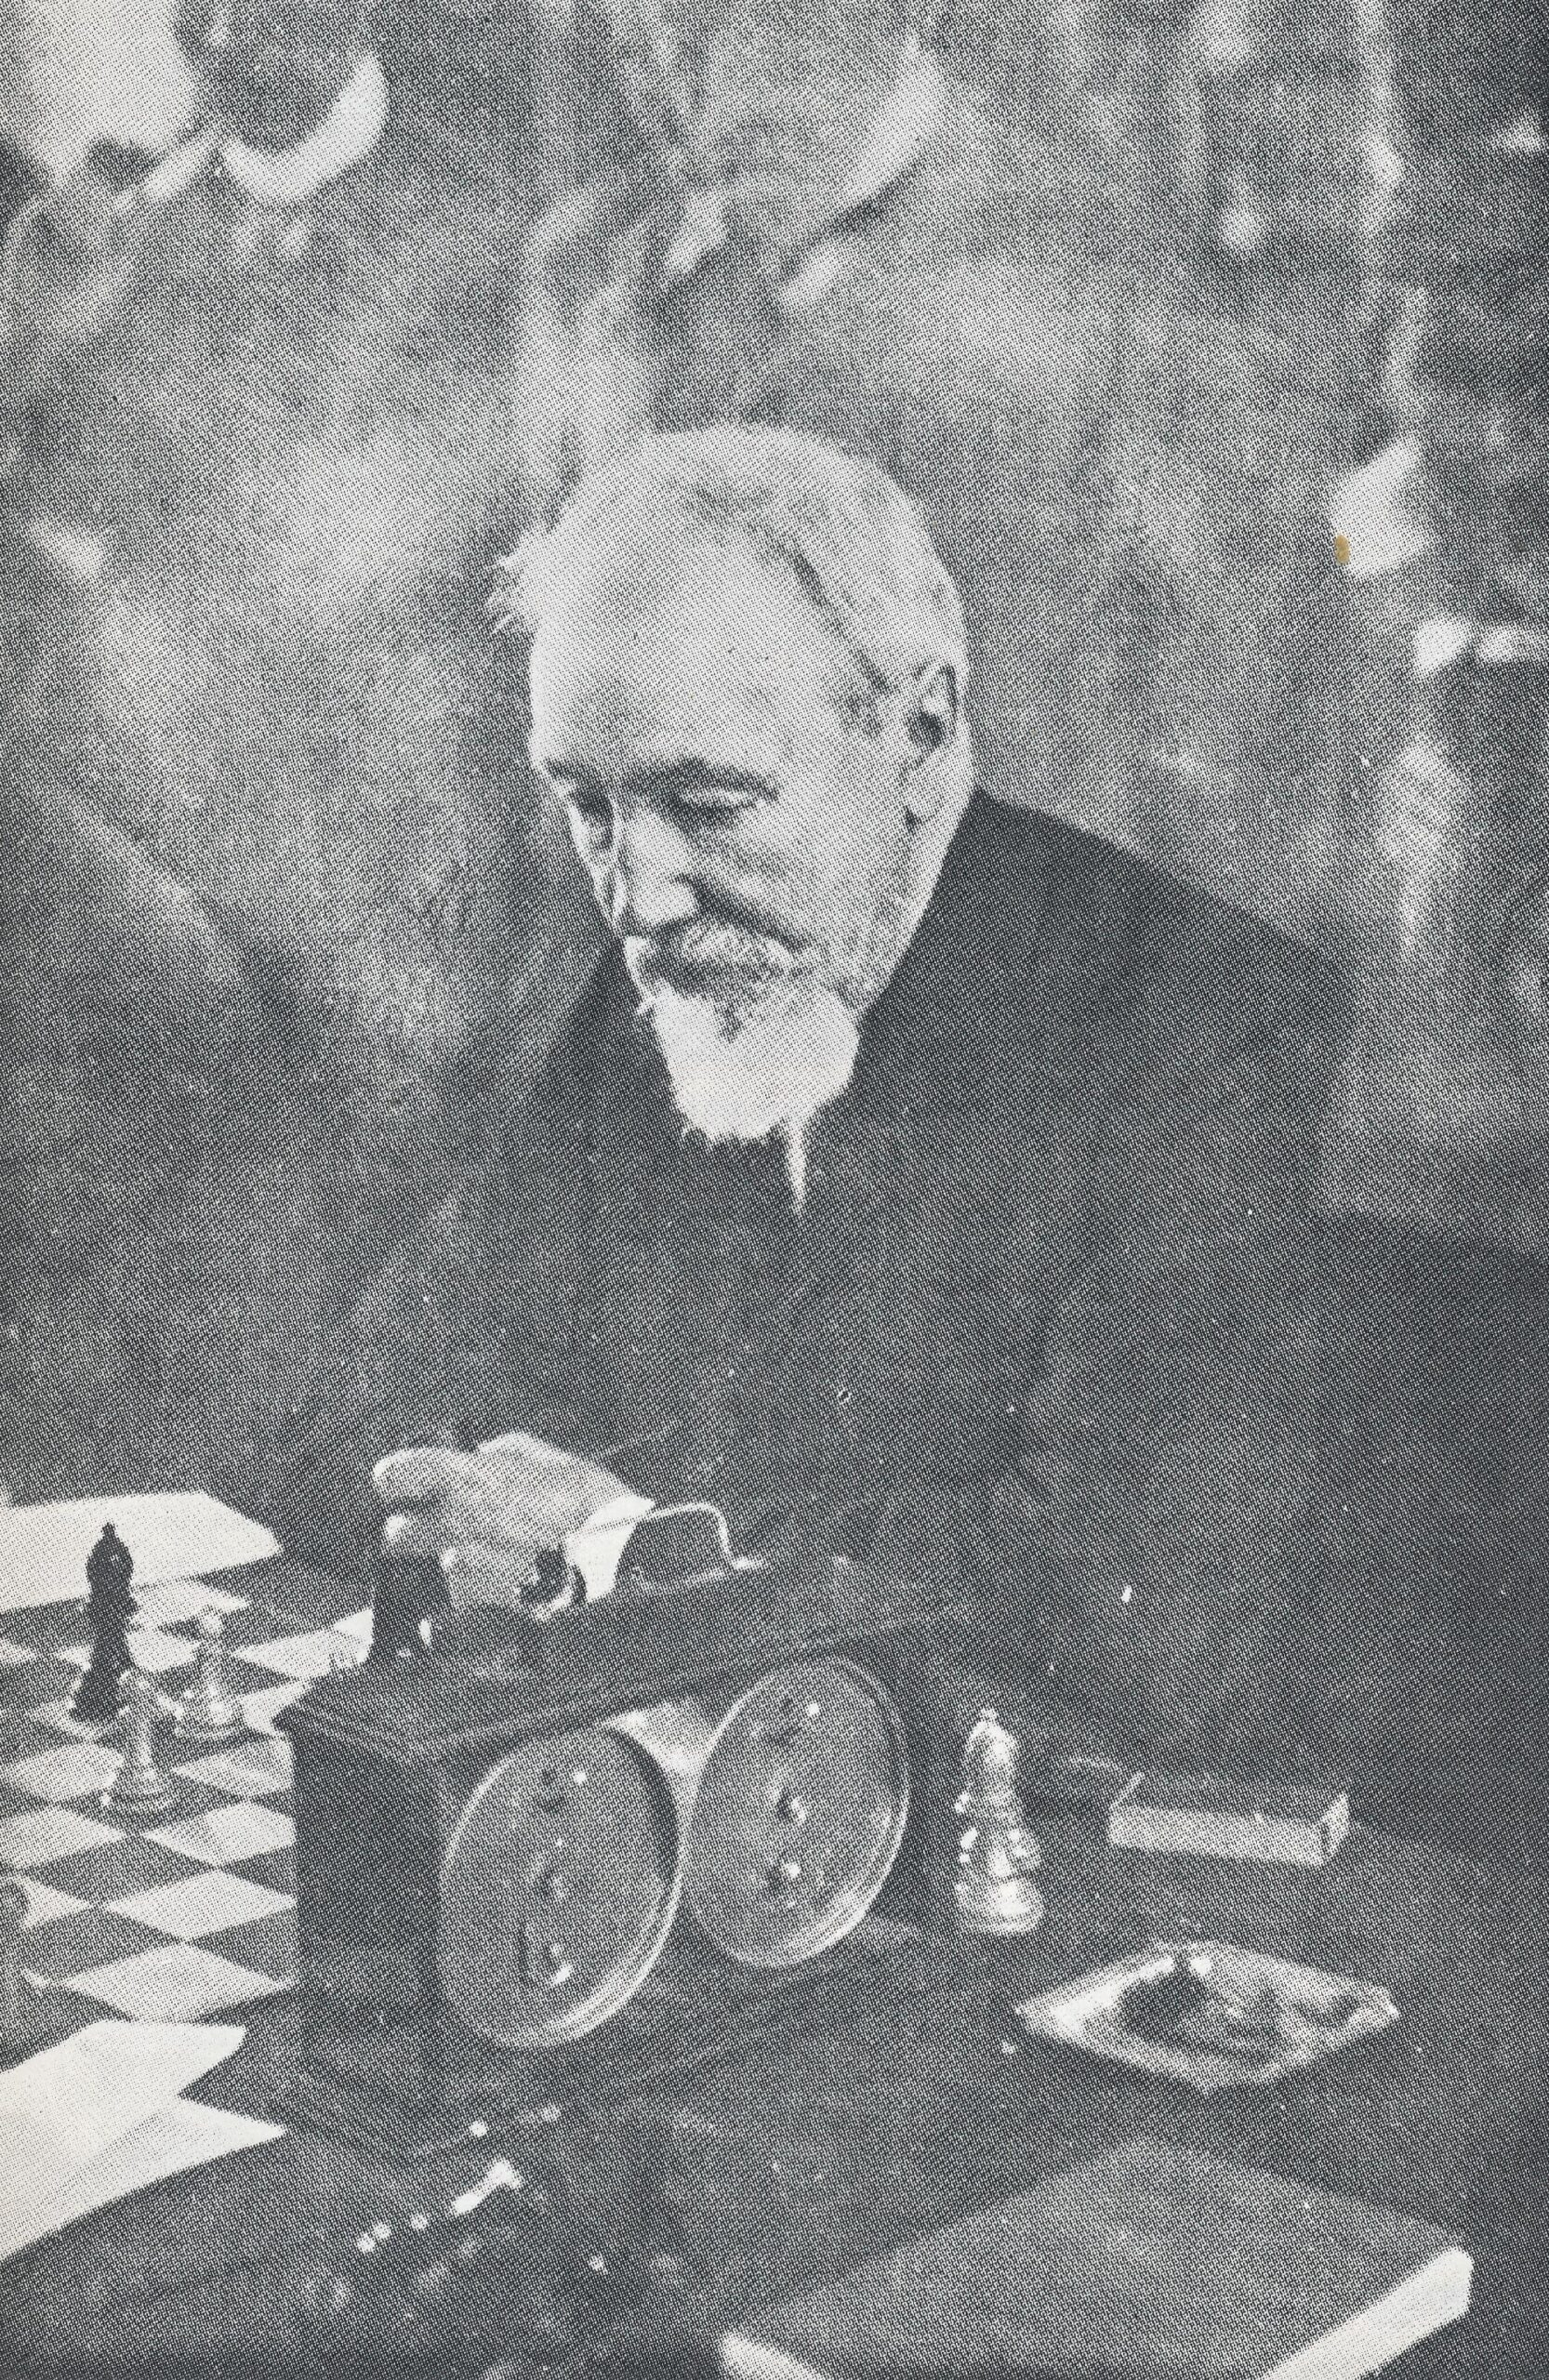 Joseph Blackburne (10-xii-1841 01-ix-1924). Photograph from The Encyclopedia of Chess by Harry Golombek